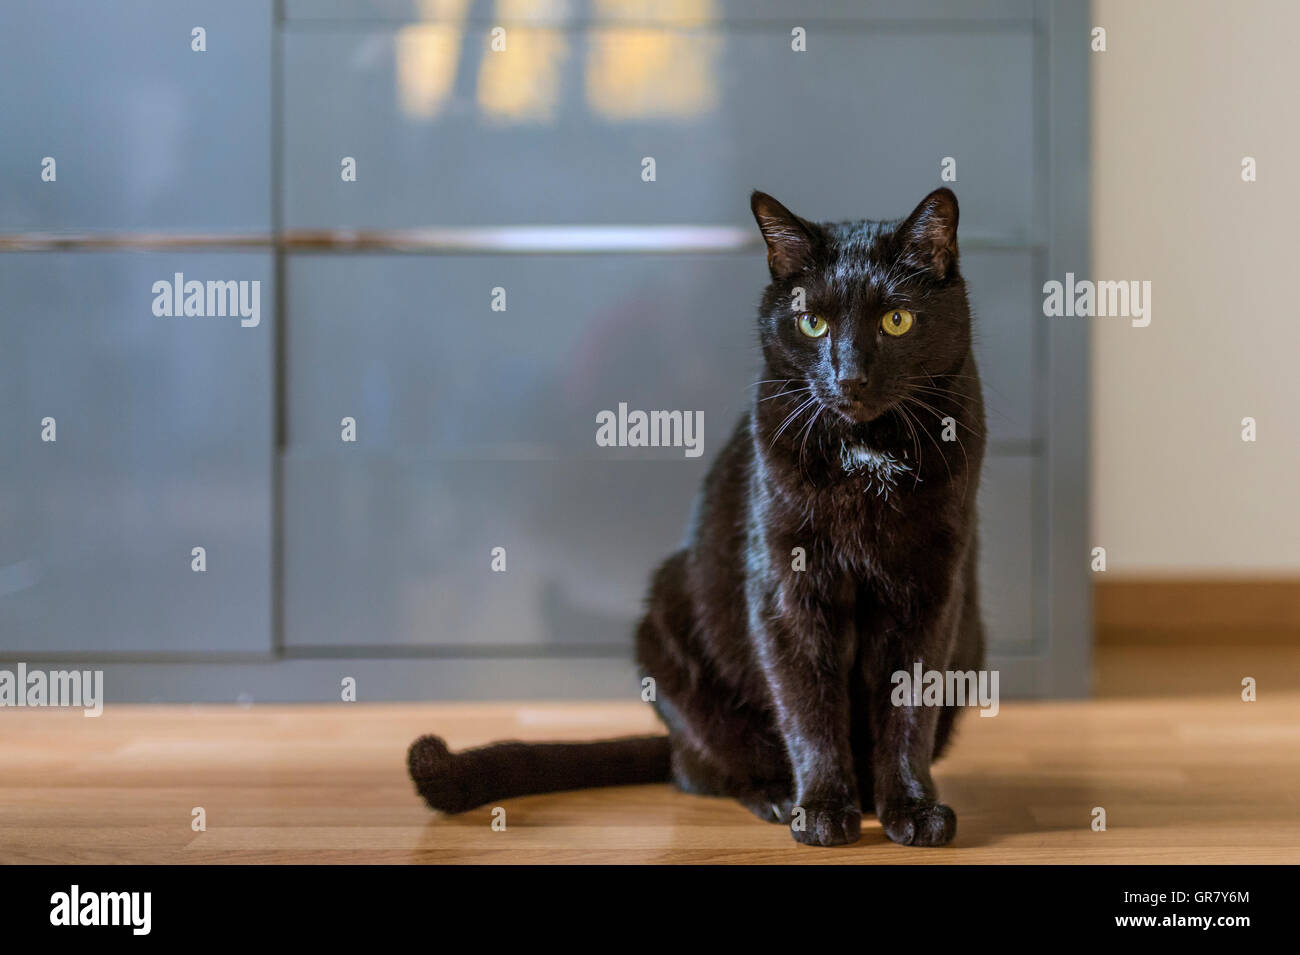 A Black Cat Sitting On The Floor - Stock Image